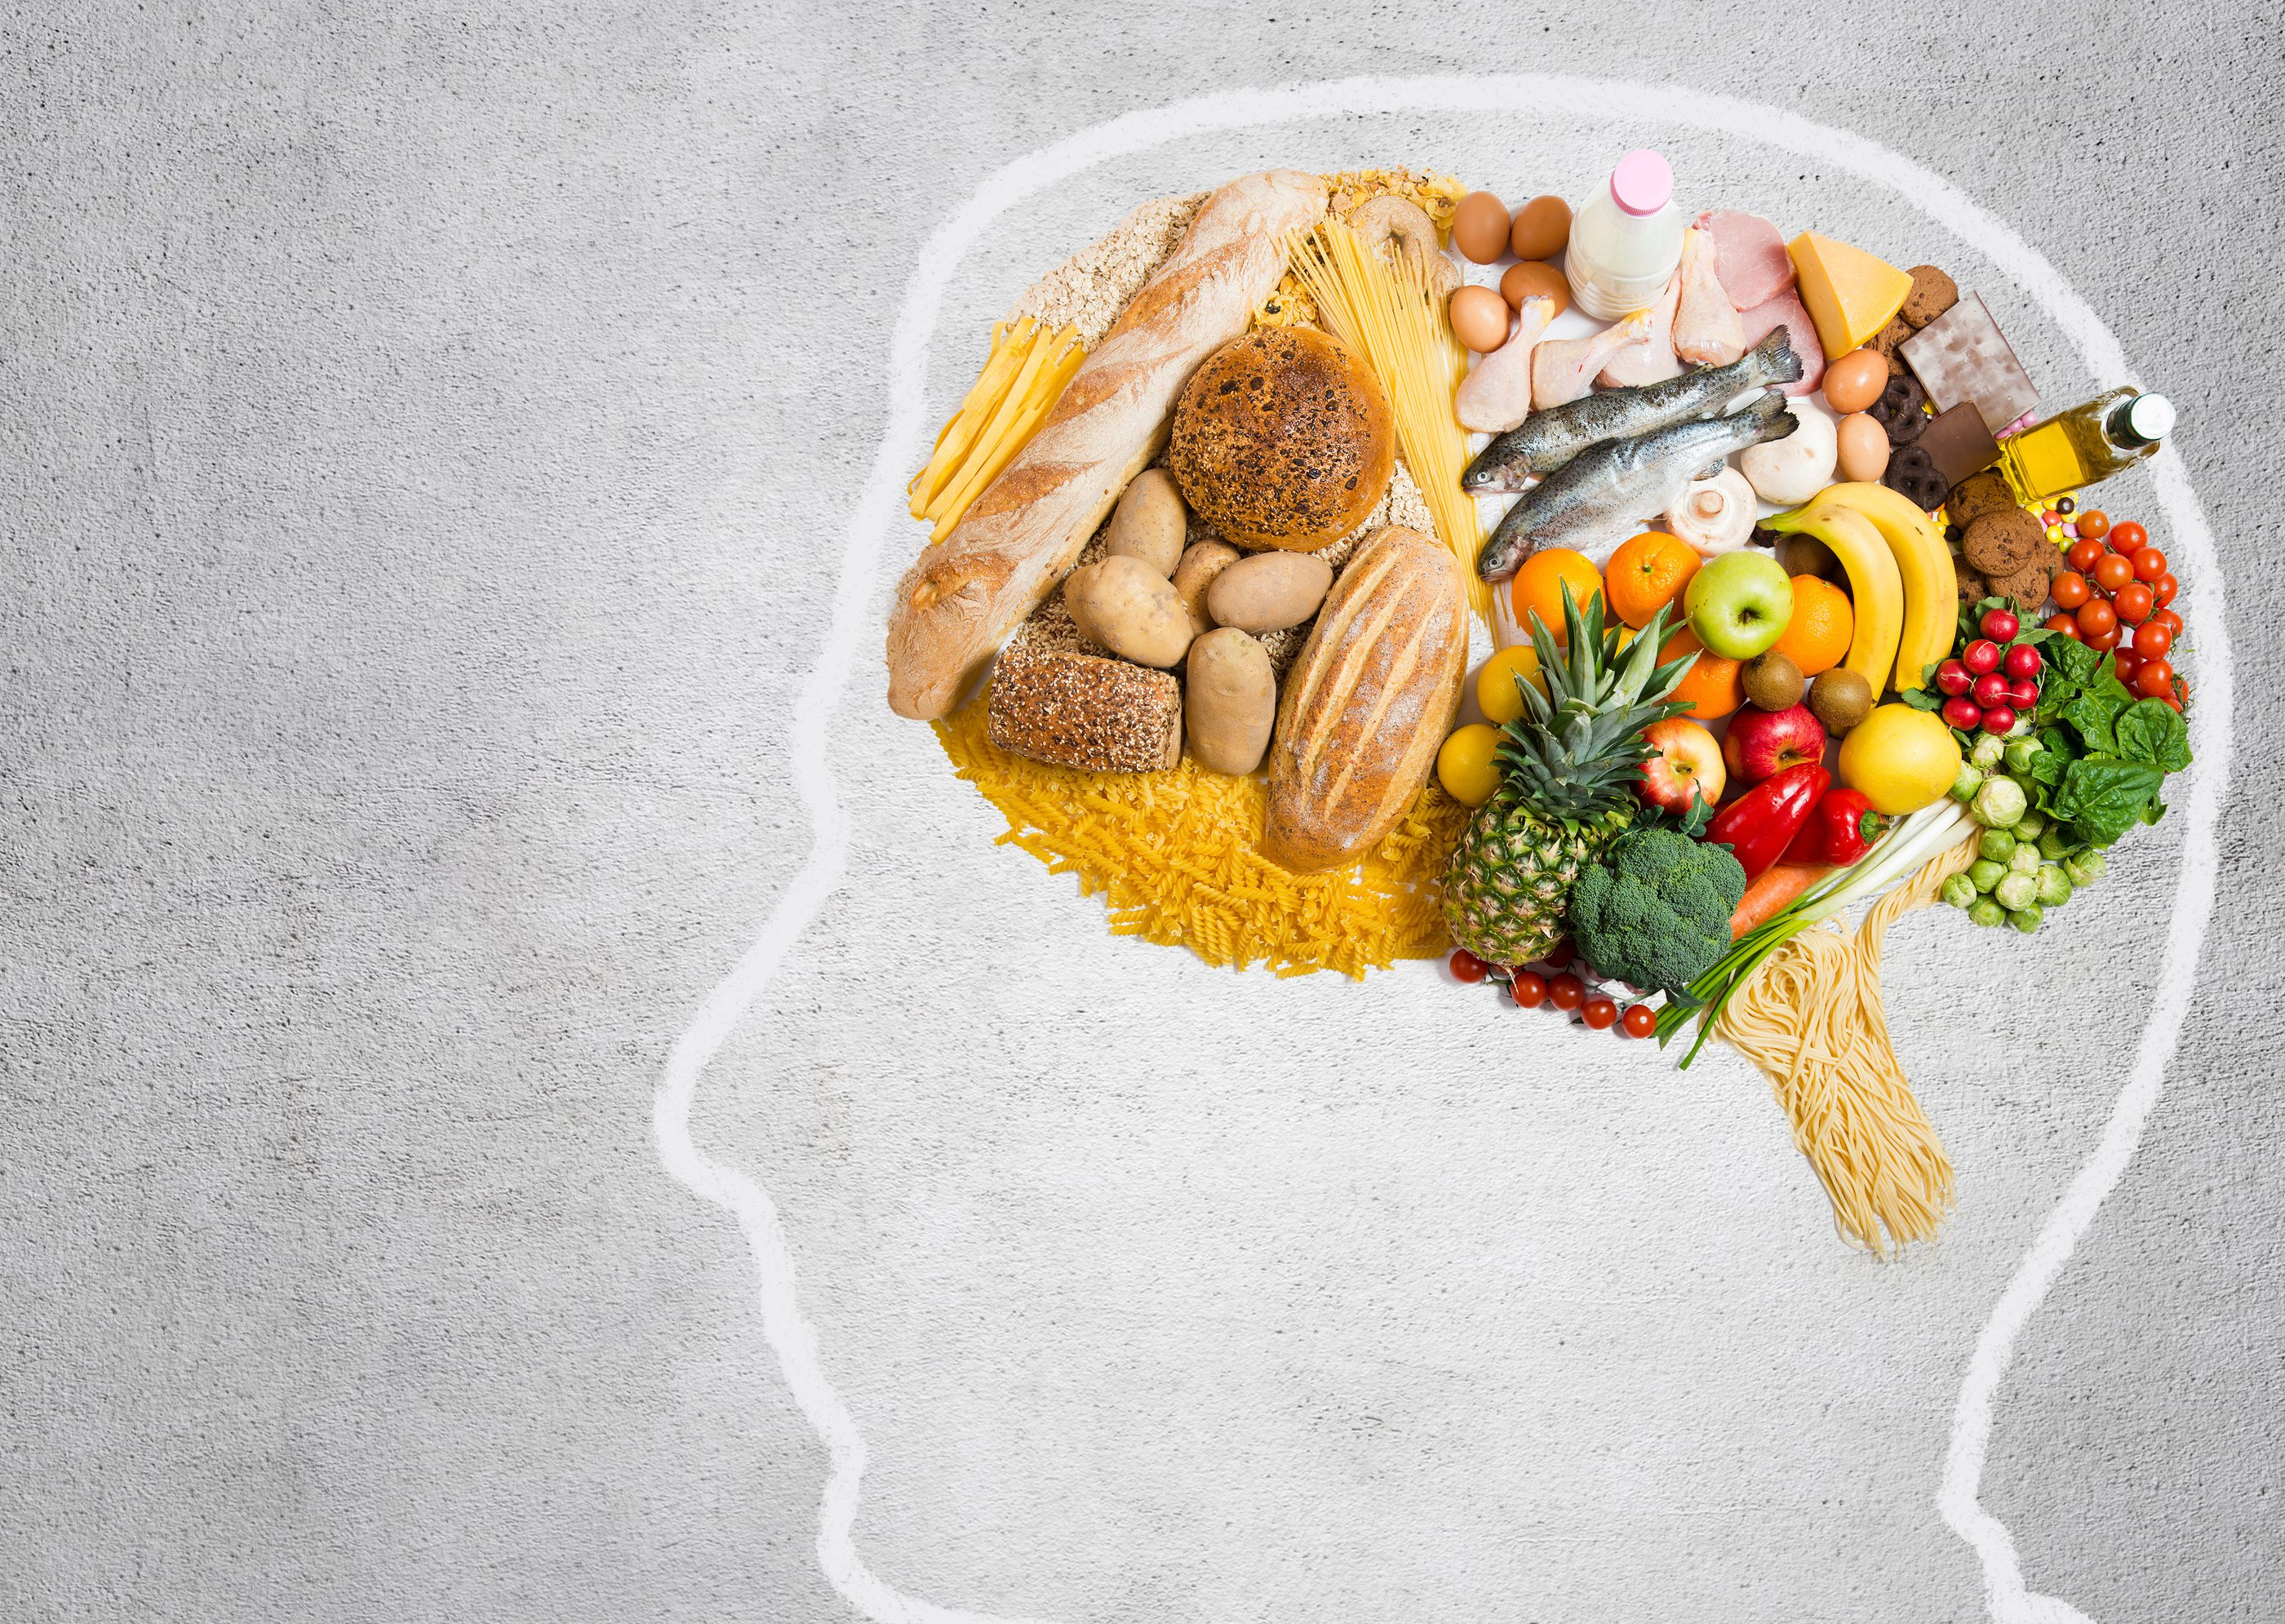 Nutrition in Middle Age Brain Function | El Paso, TX Chiropractor